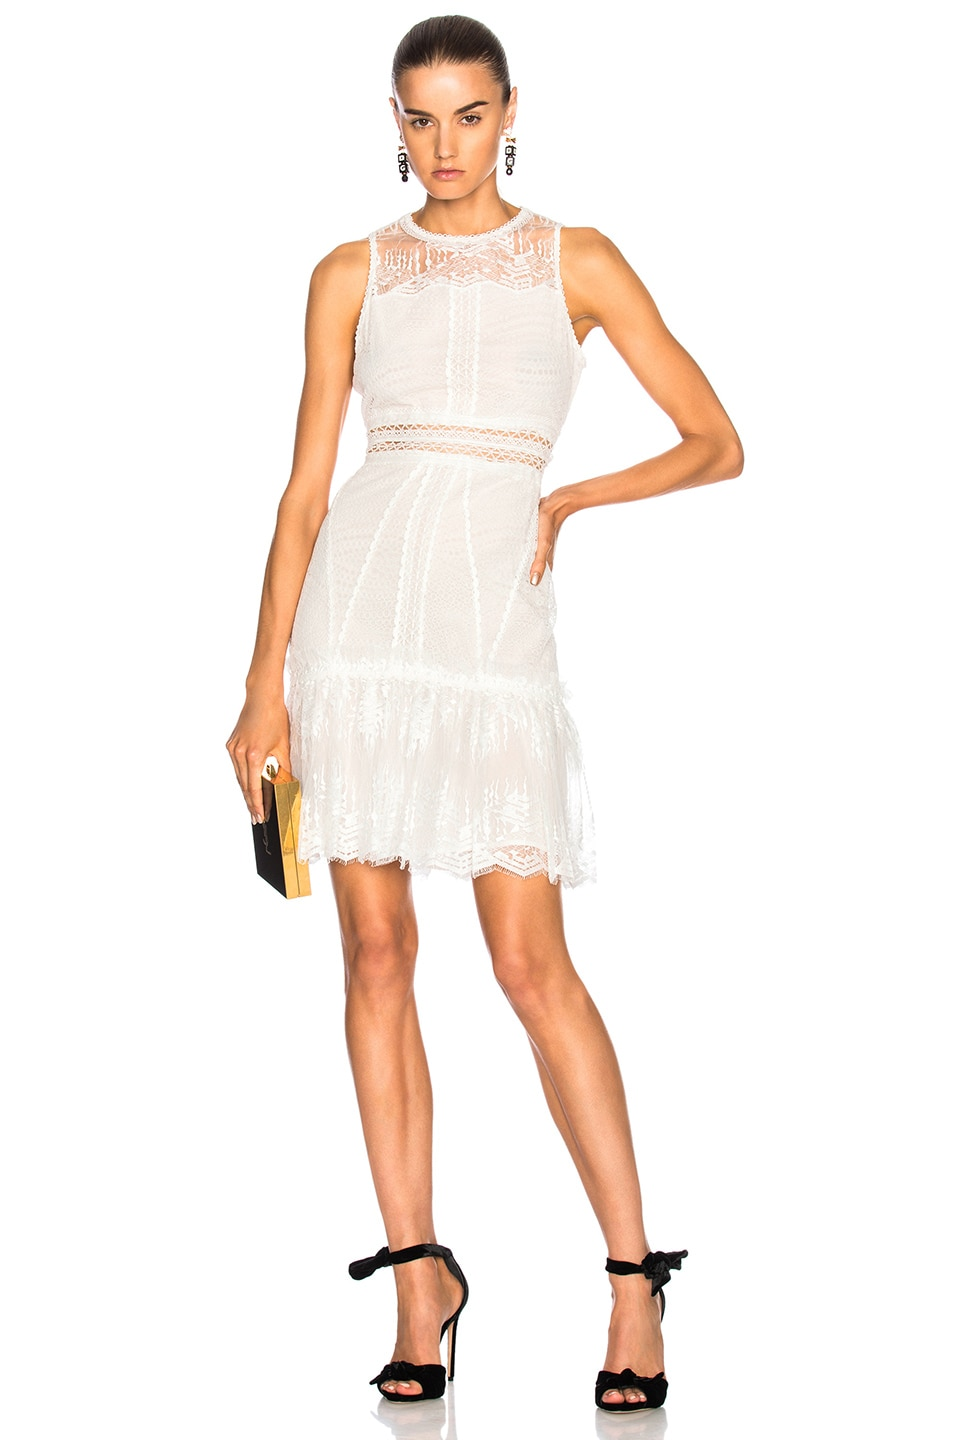 JONATHAN SIMKHAI Scallop Ripple Tier Ruffle Mini Dress in White